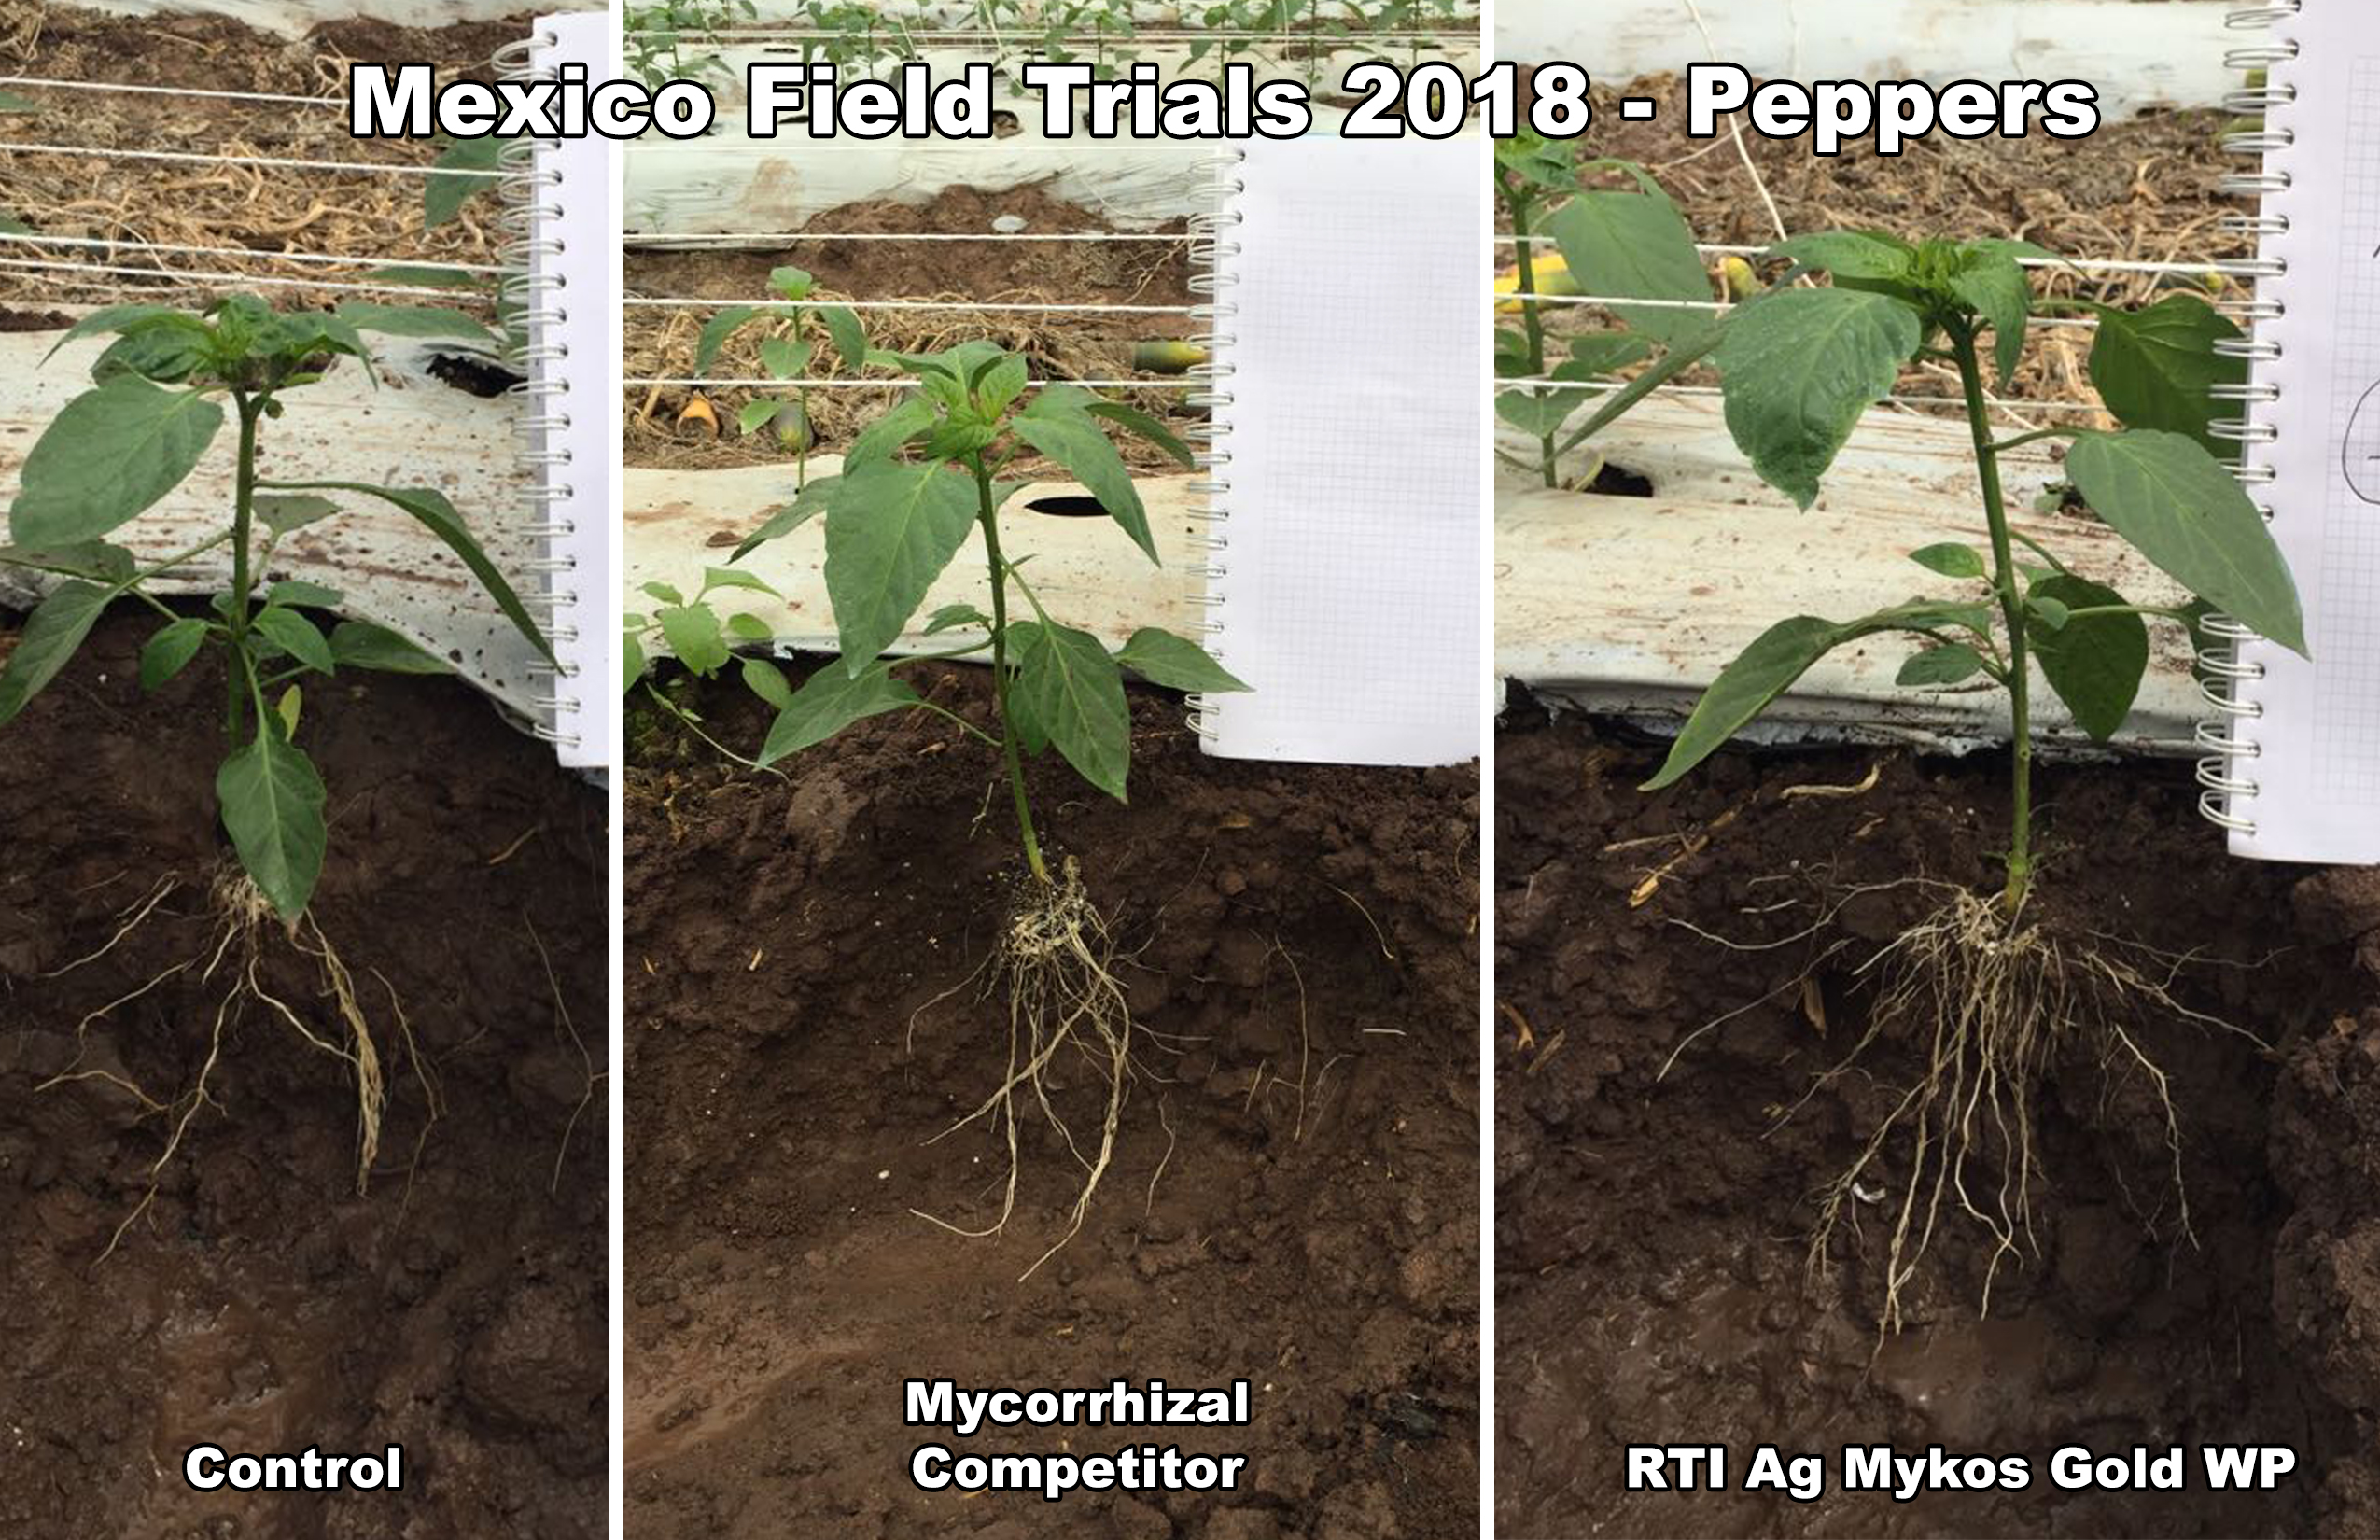 rti ag mexico pepper trials 2018